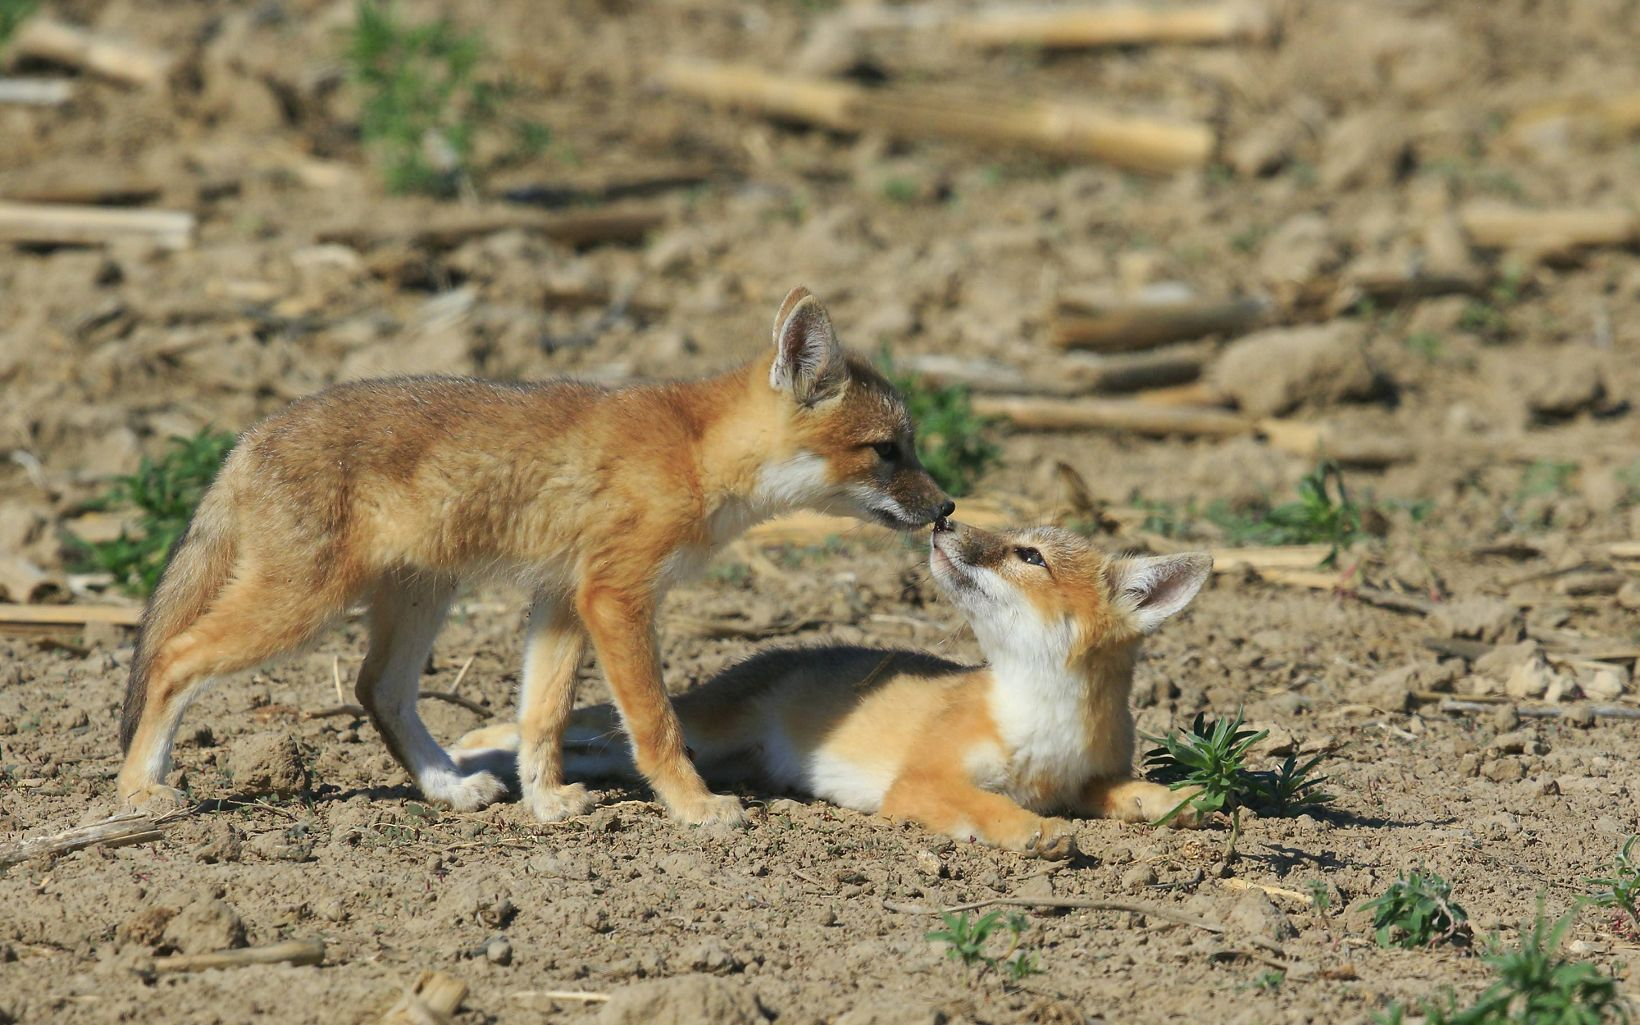 Two young fox pups with noses touching.